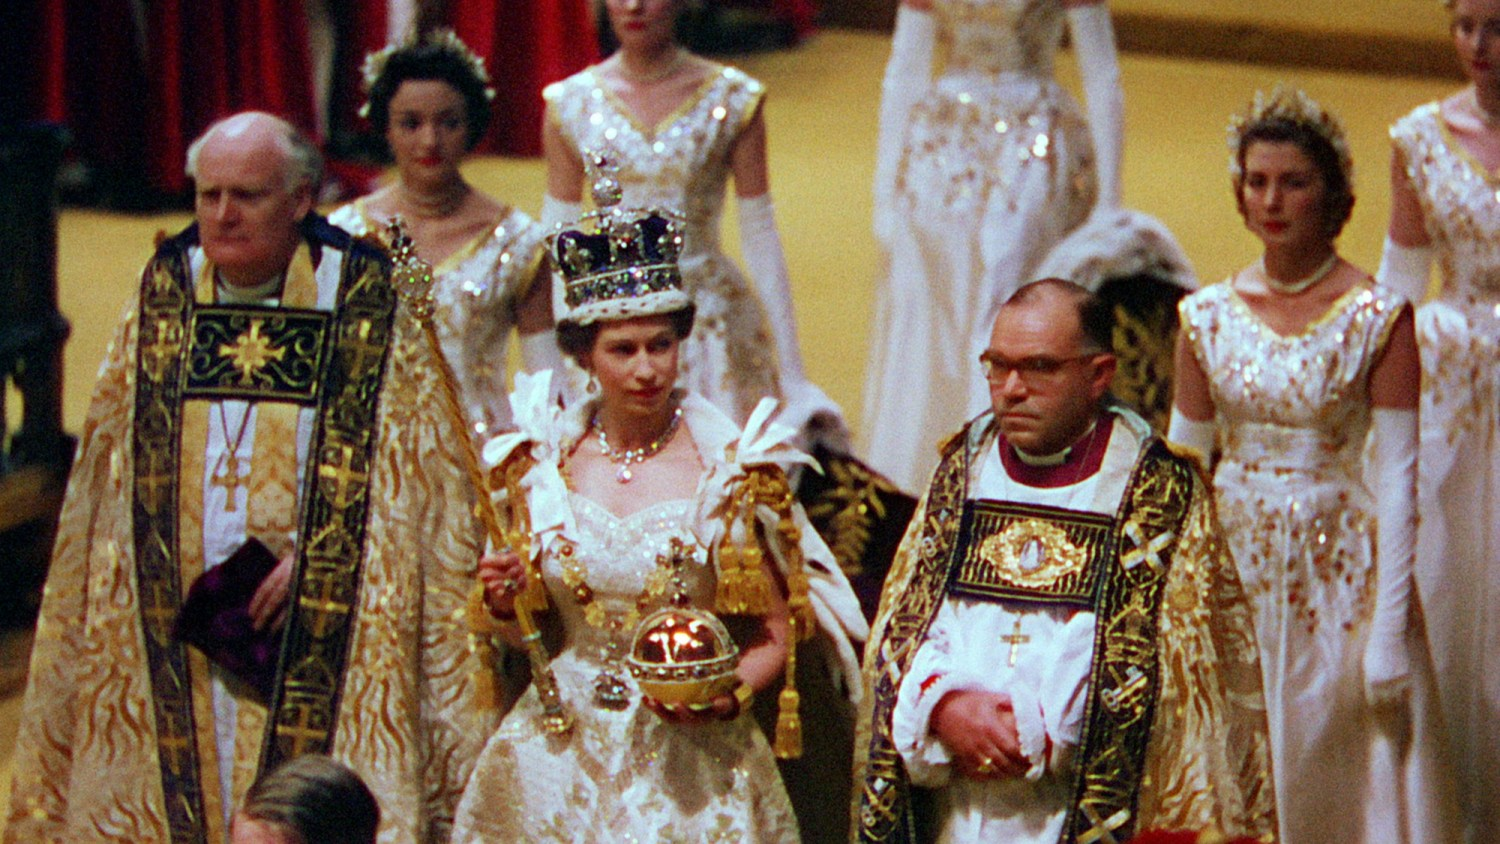 The Queen wears the imperial state crown after the coronation.  Her Majesty The Queen - (C) ITV Archive - Photographer: ITV Archive